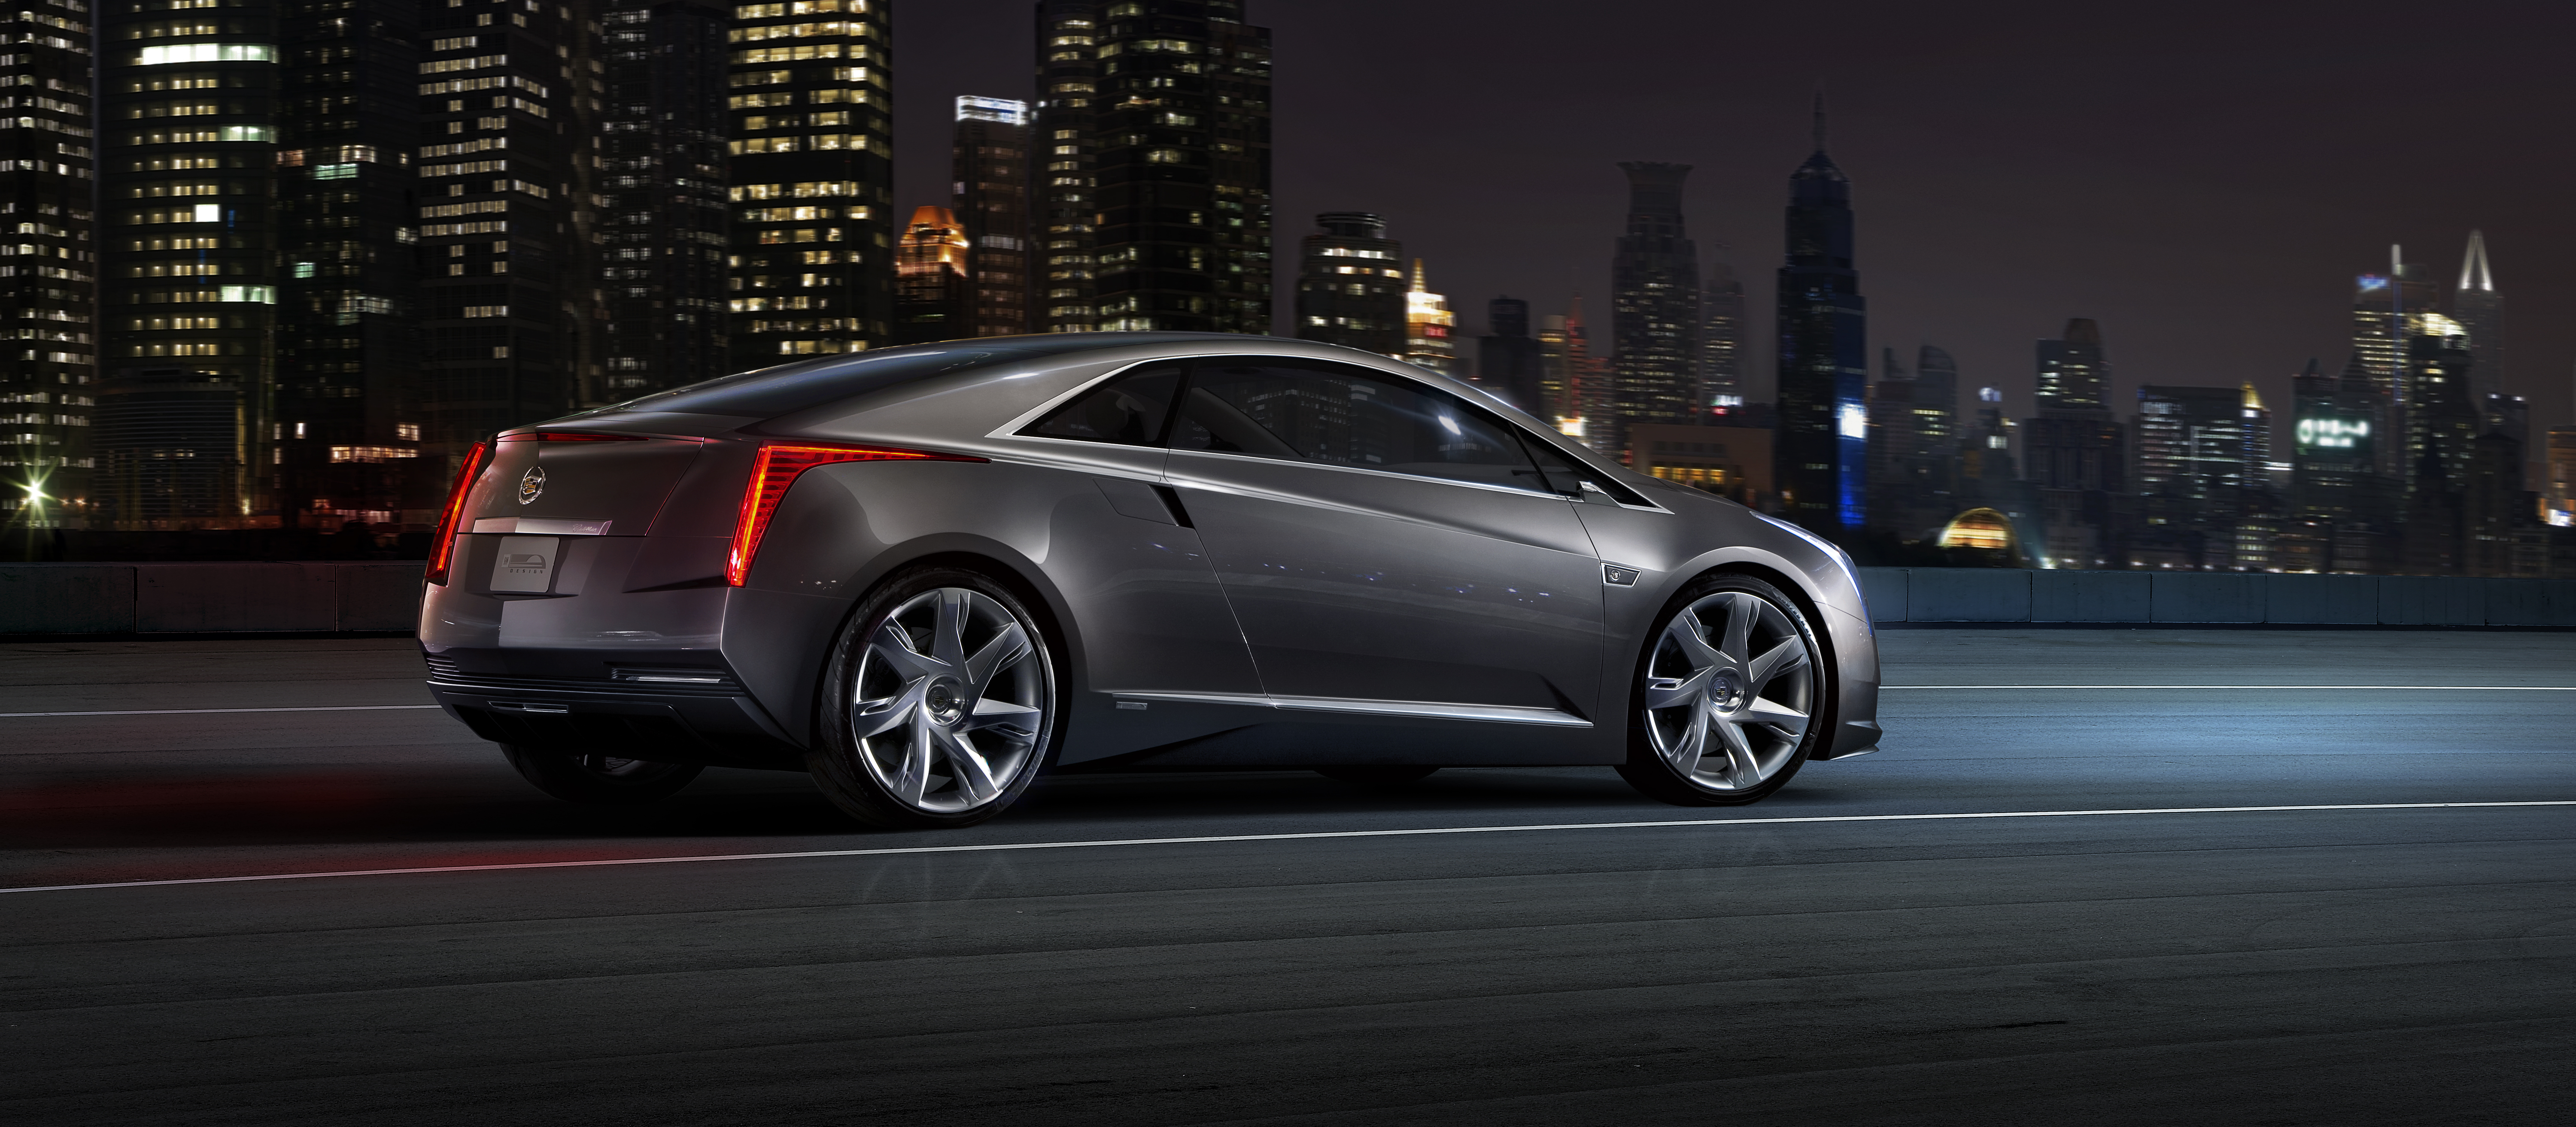 Electric Concept Car Comes to Life as Cadillac ELR